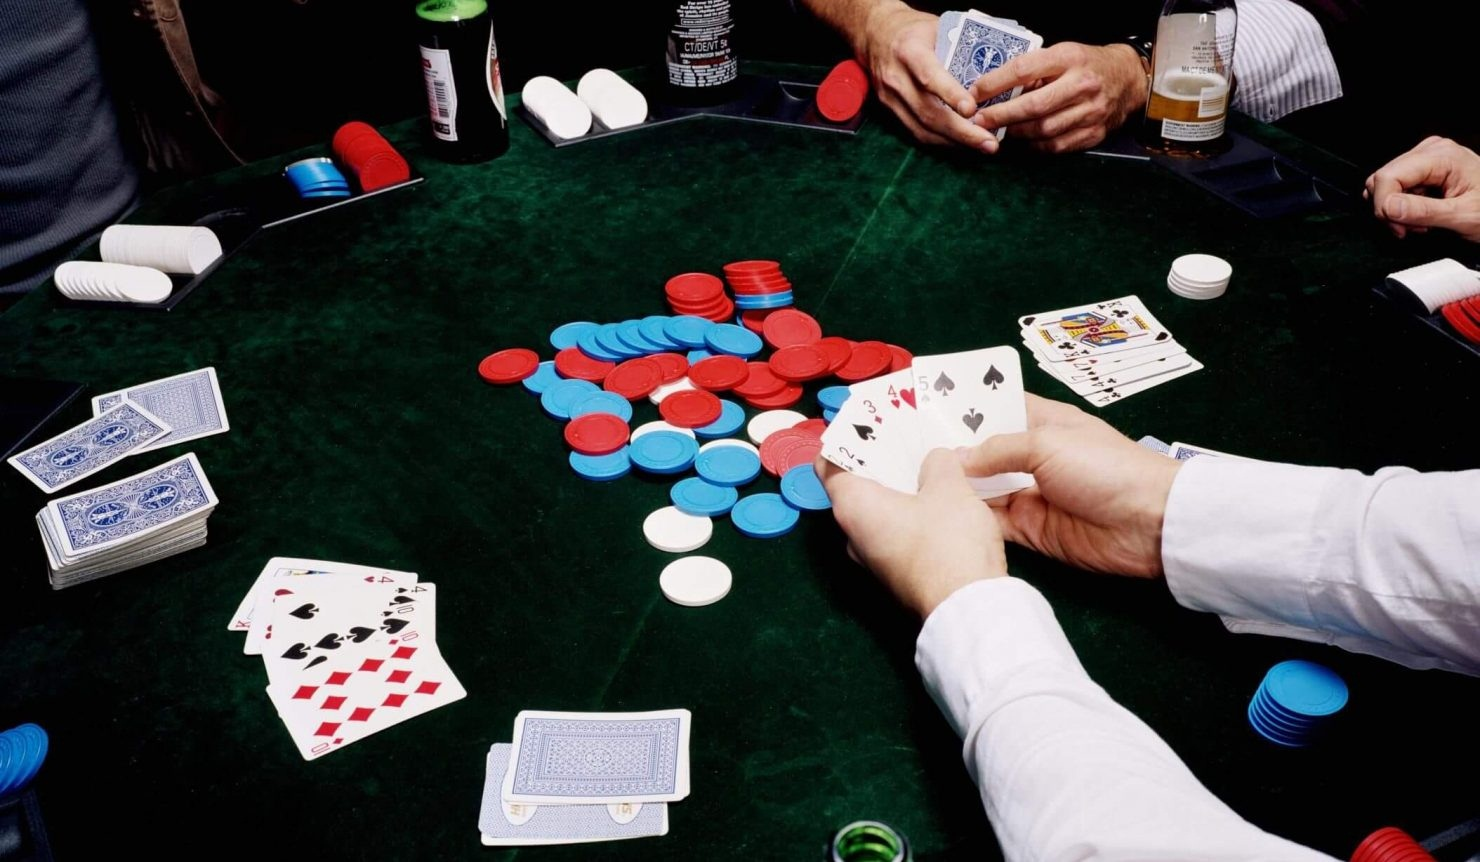 How many decks of cards do you need to play poker